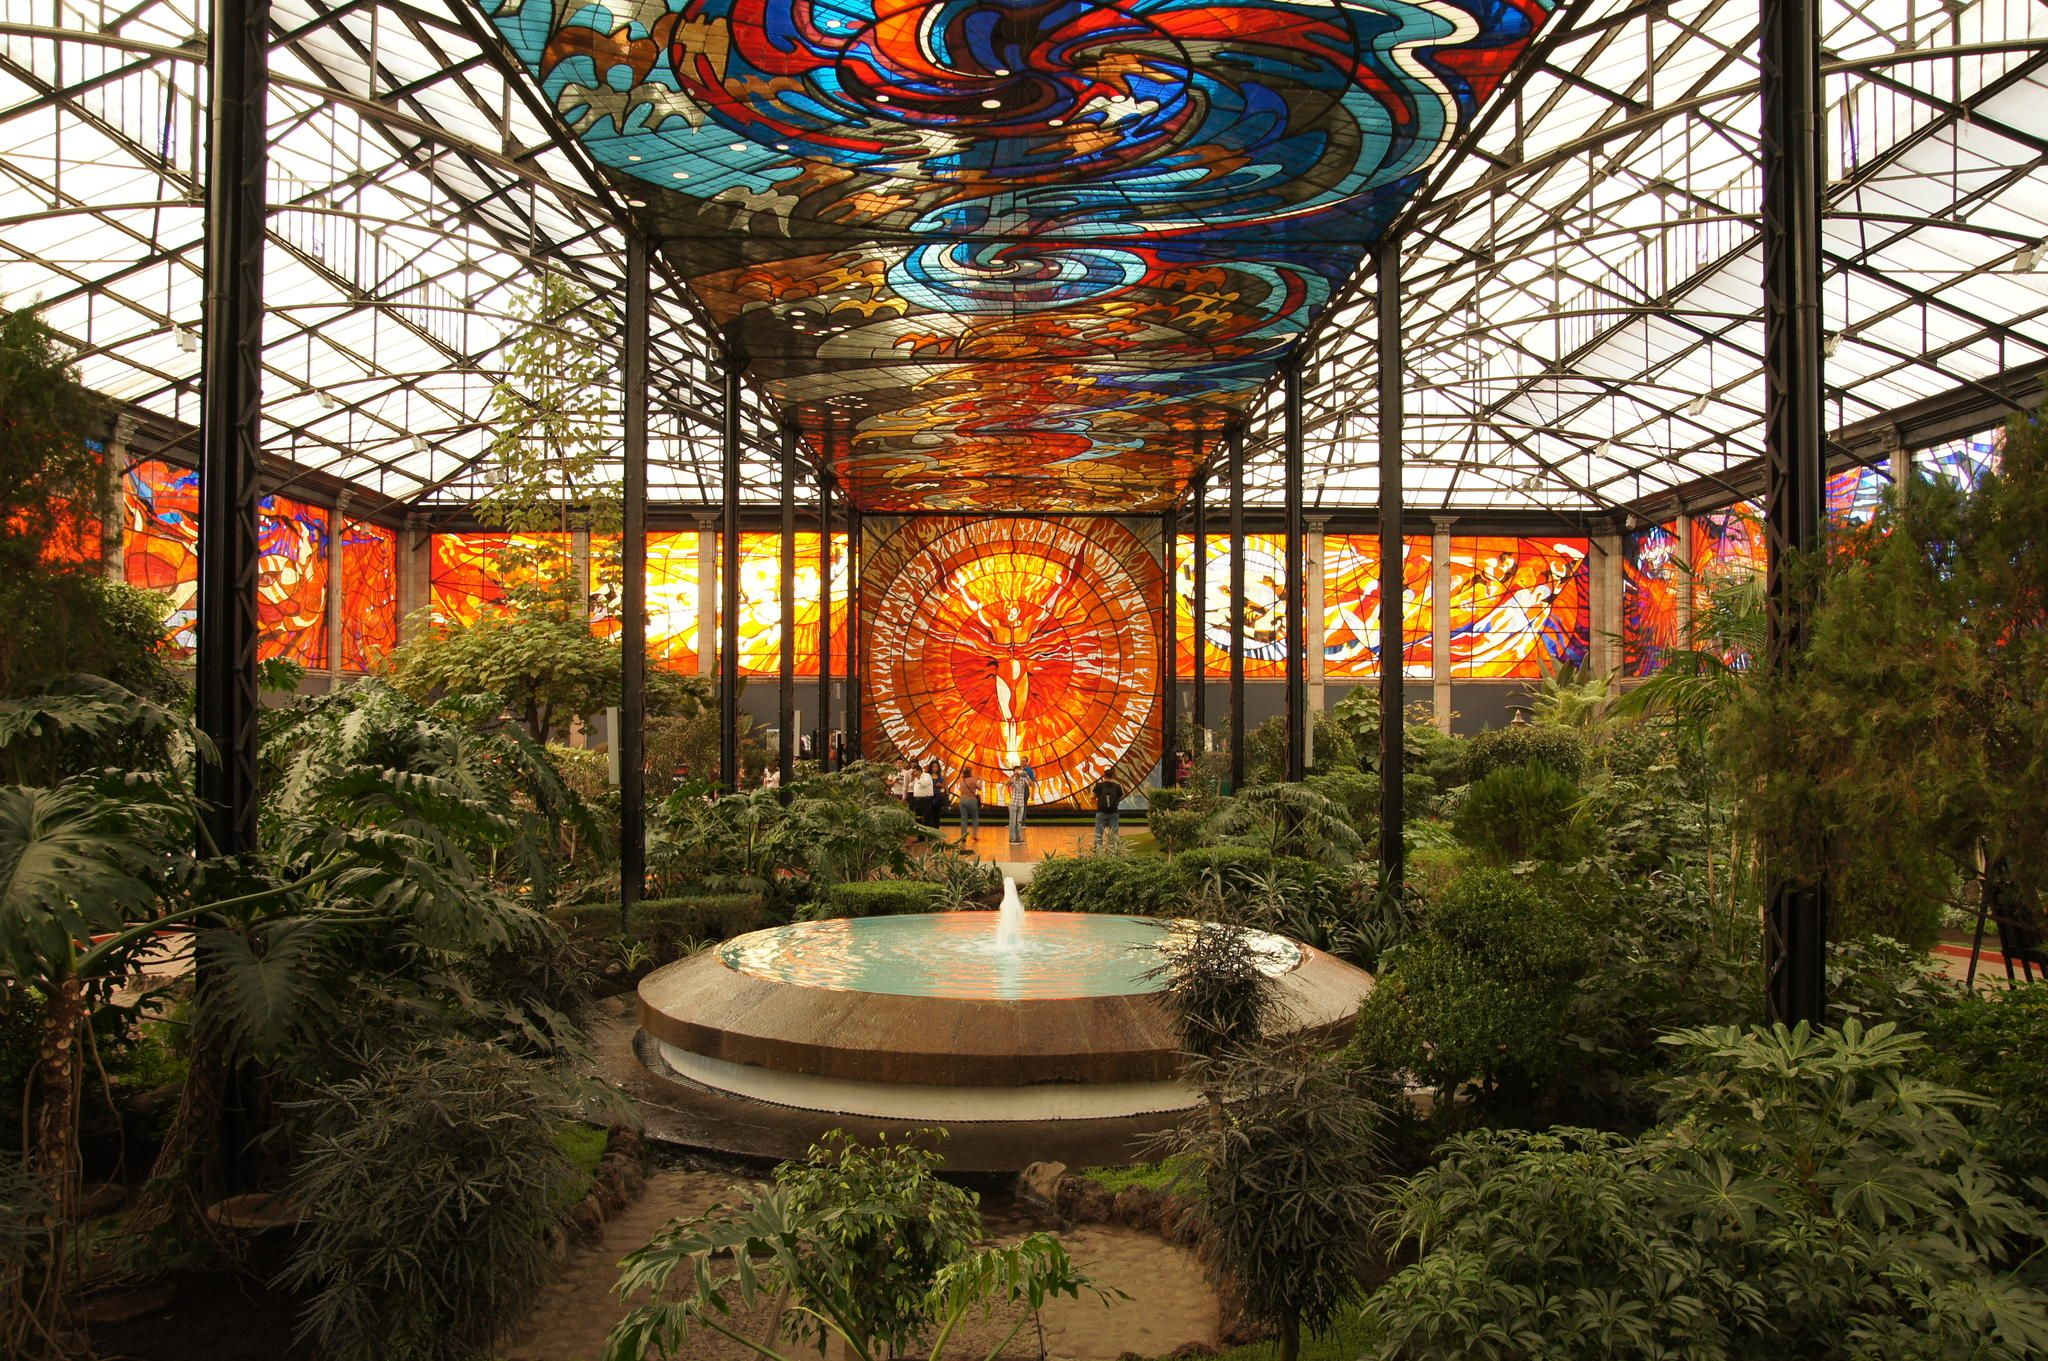 cosmovitral in toluca mexico 30 captivating ceilings that would